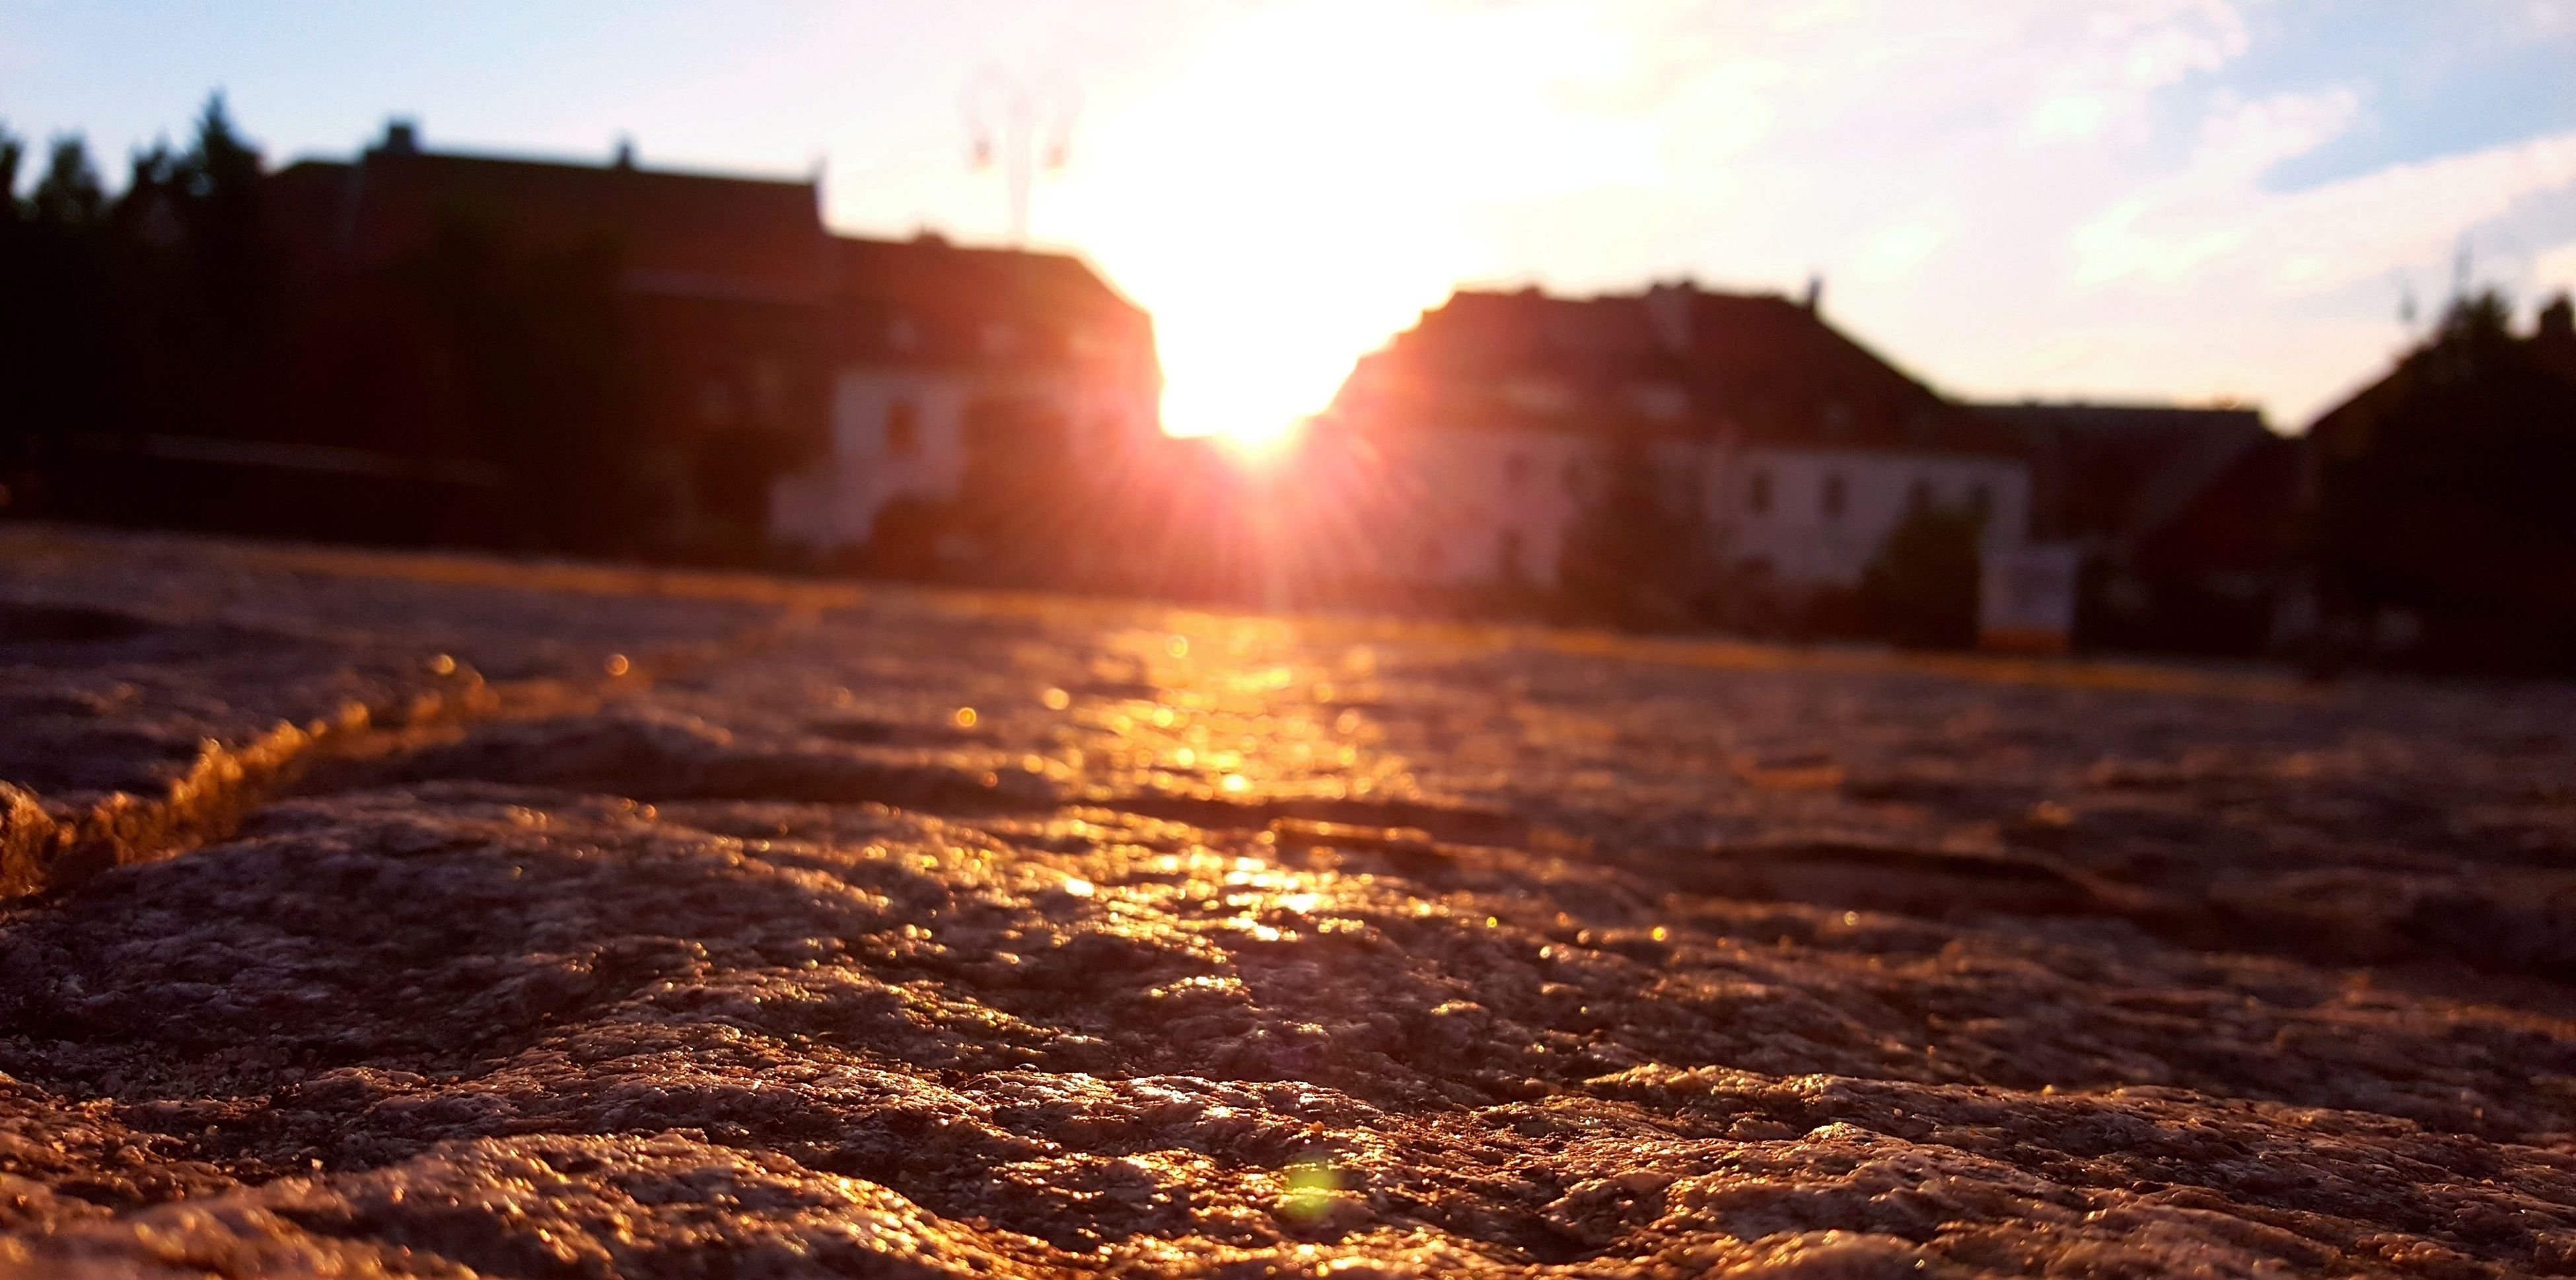 sunlight, sunset, sun, no people, nature, sunbeam, outdoors, building exterior, close-up, architecture, beauty in nature, day, sky, sunrise